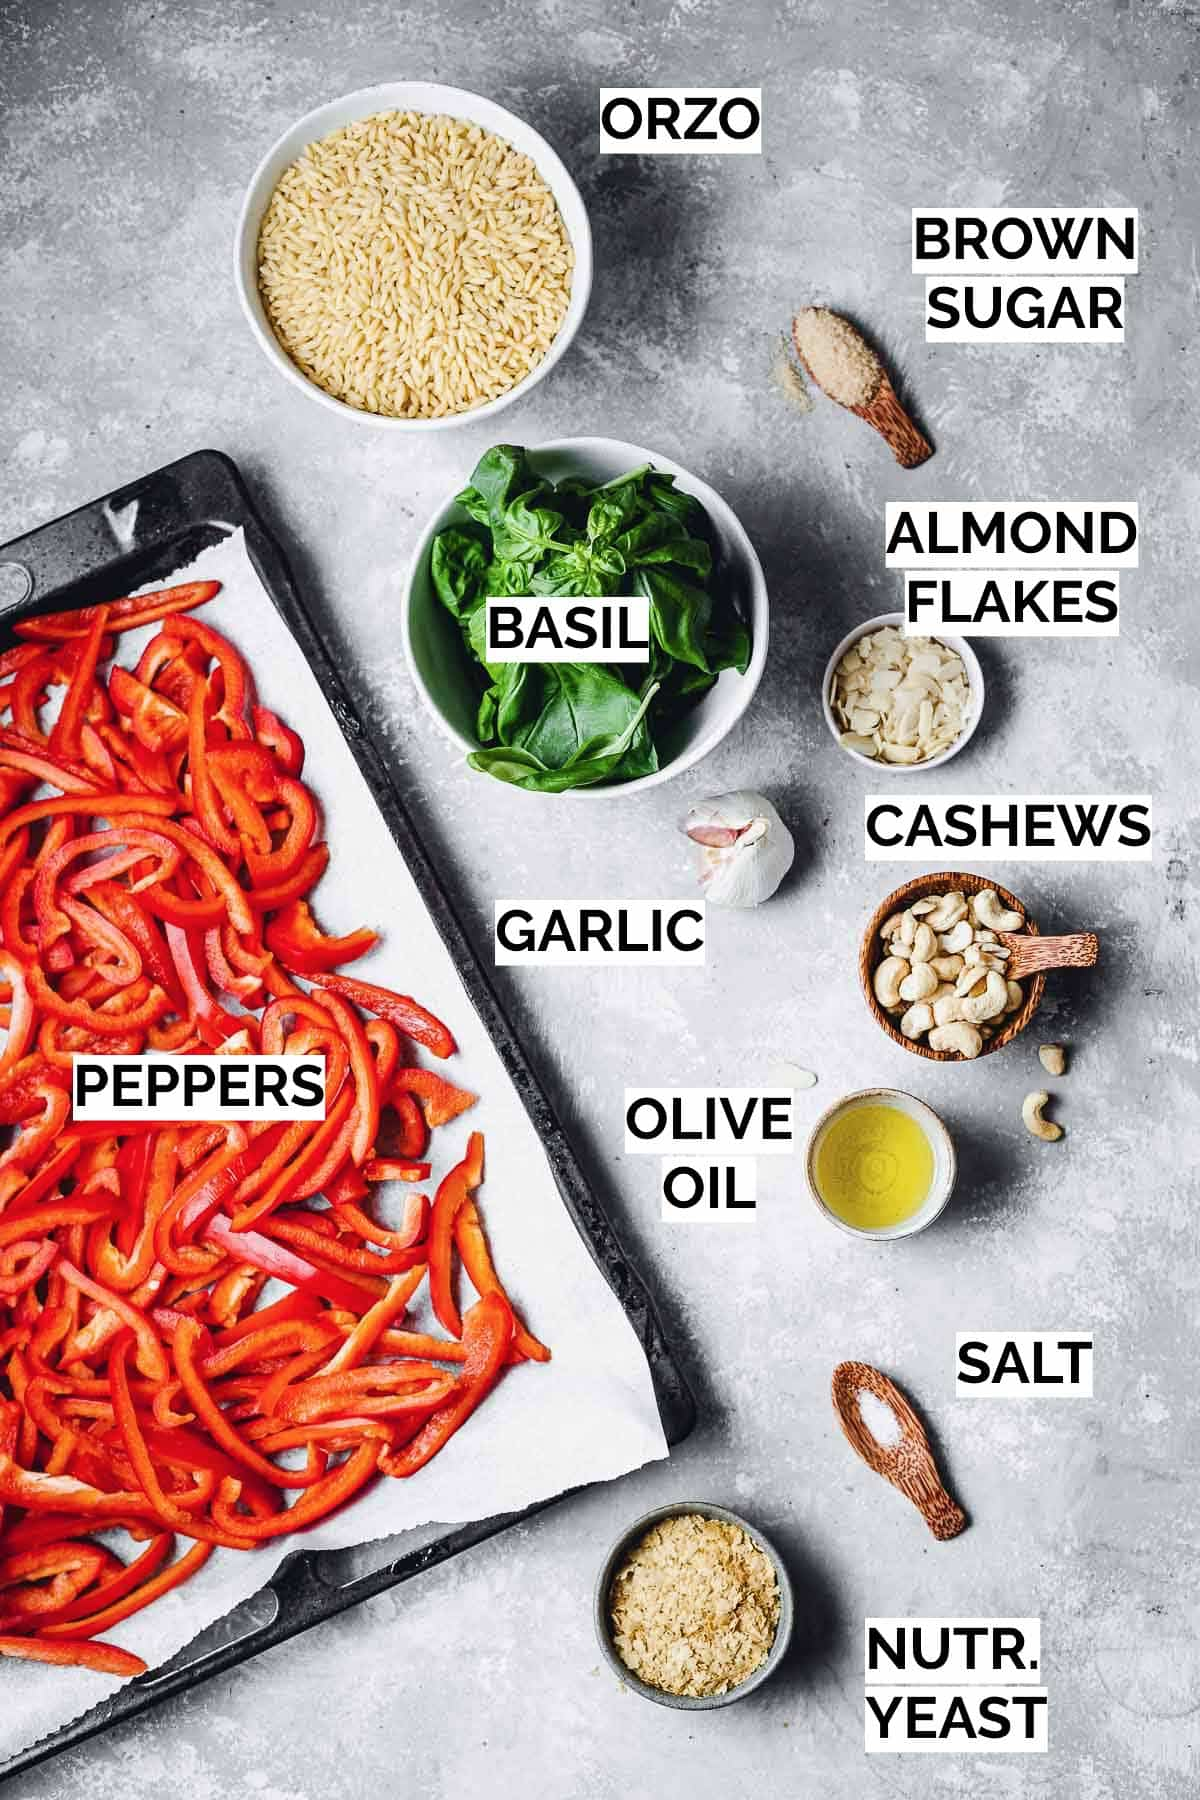 All the ingredients needed to make vegan orzo pasta laid out on a flat surface.